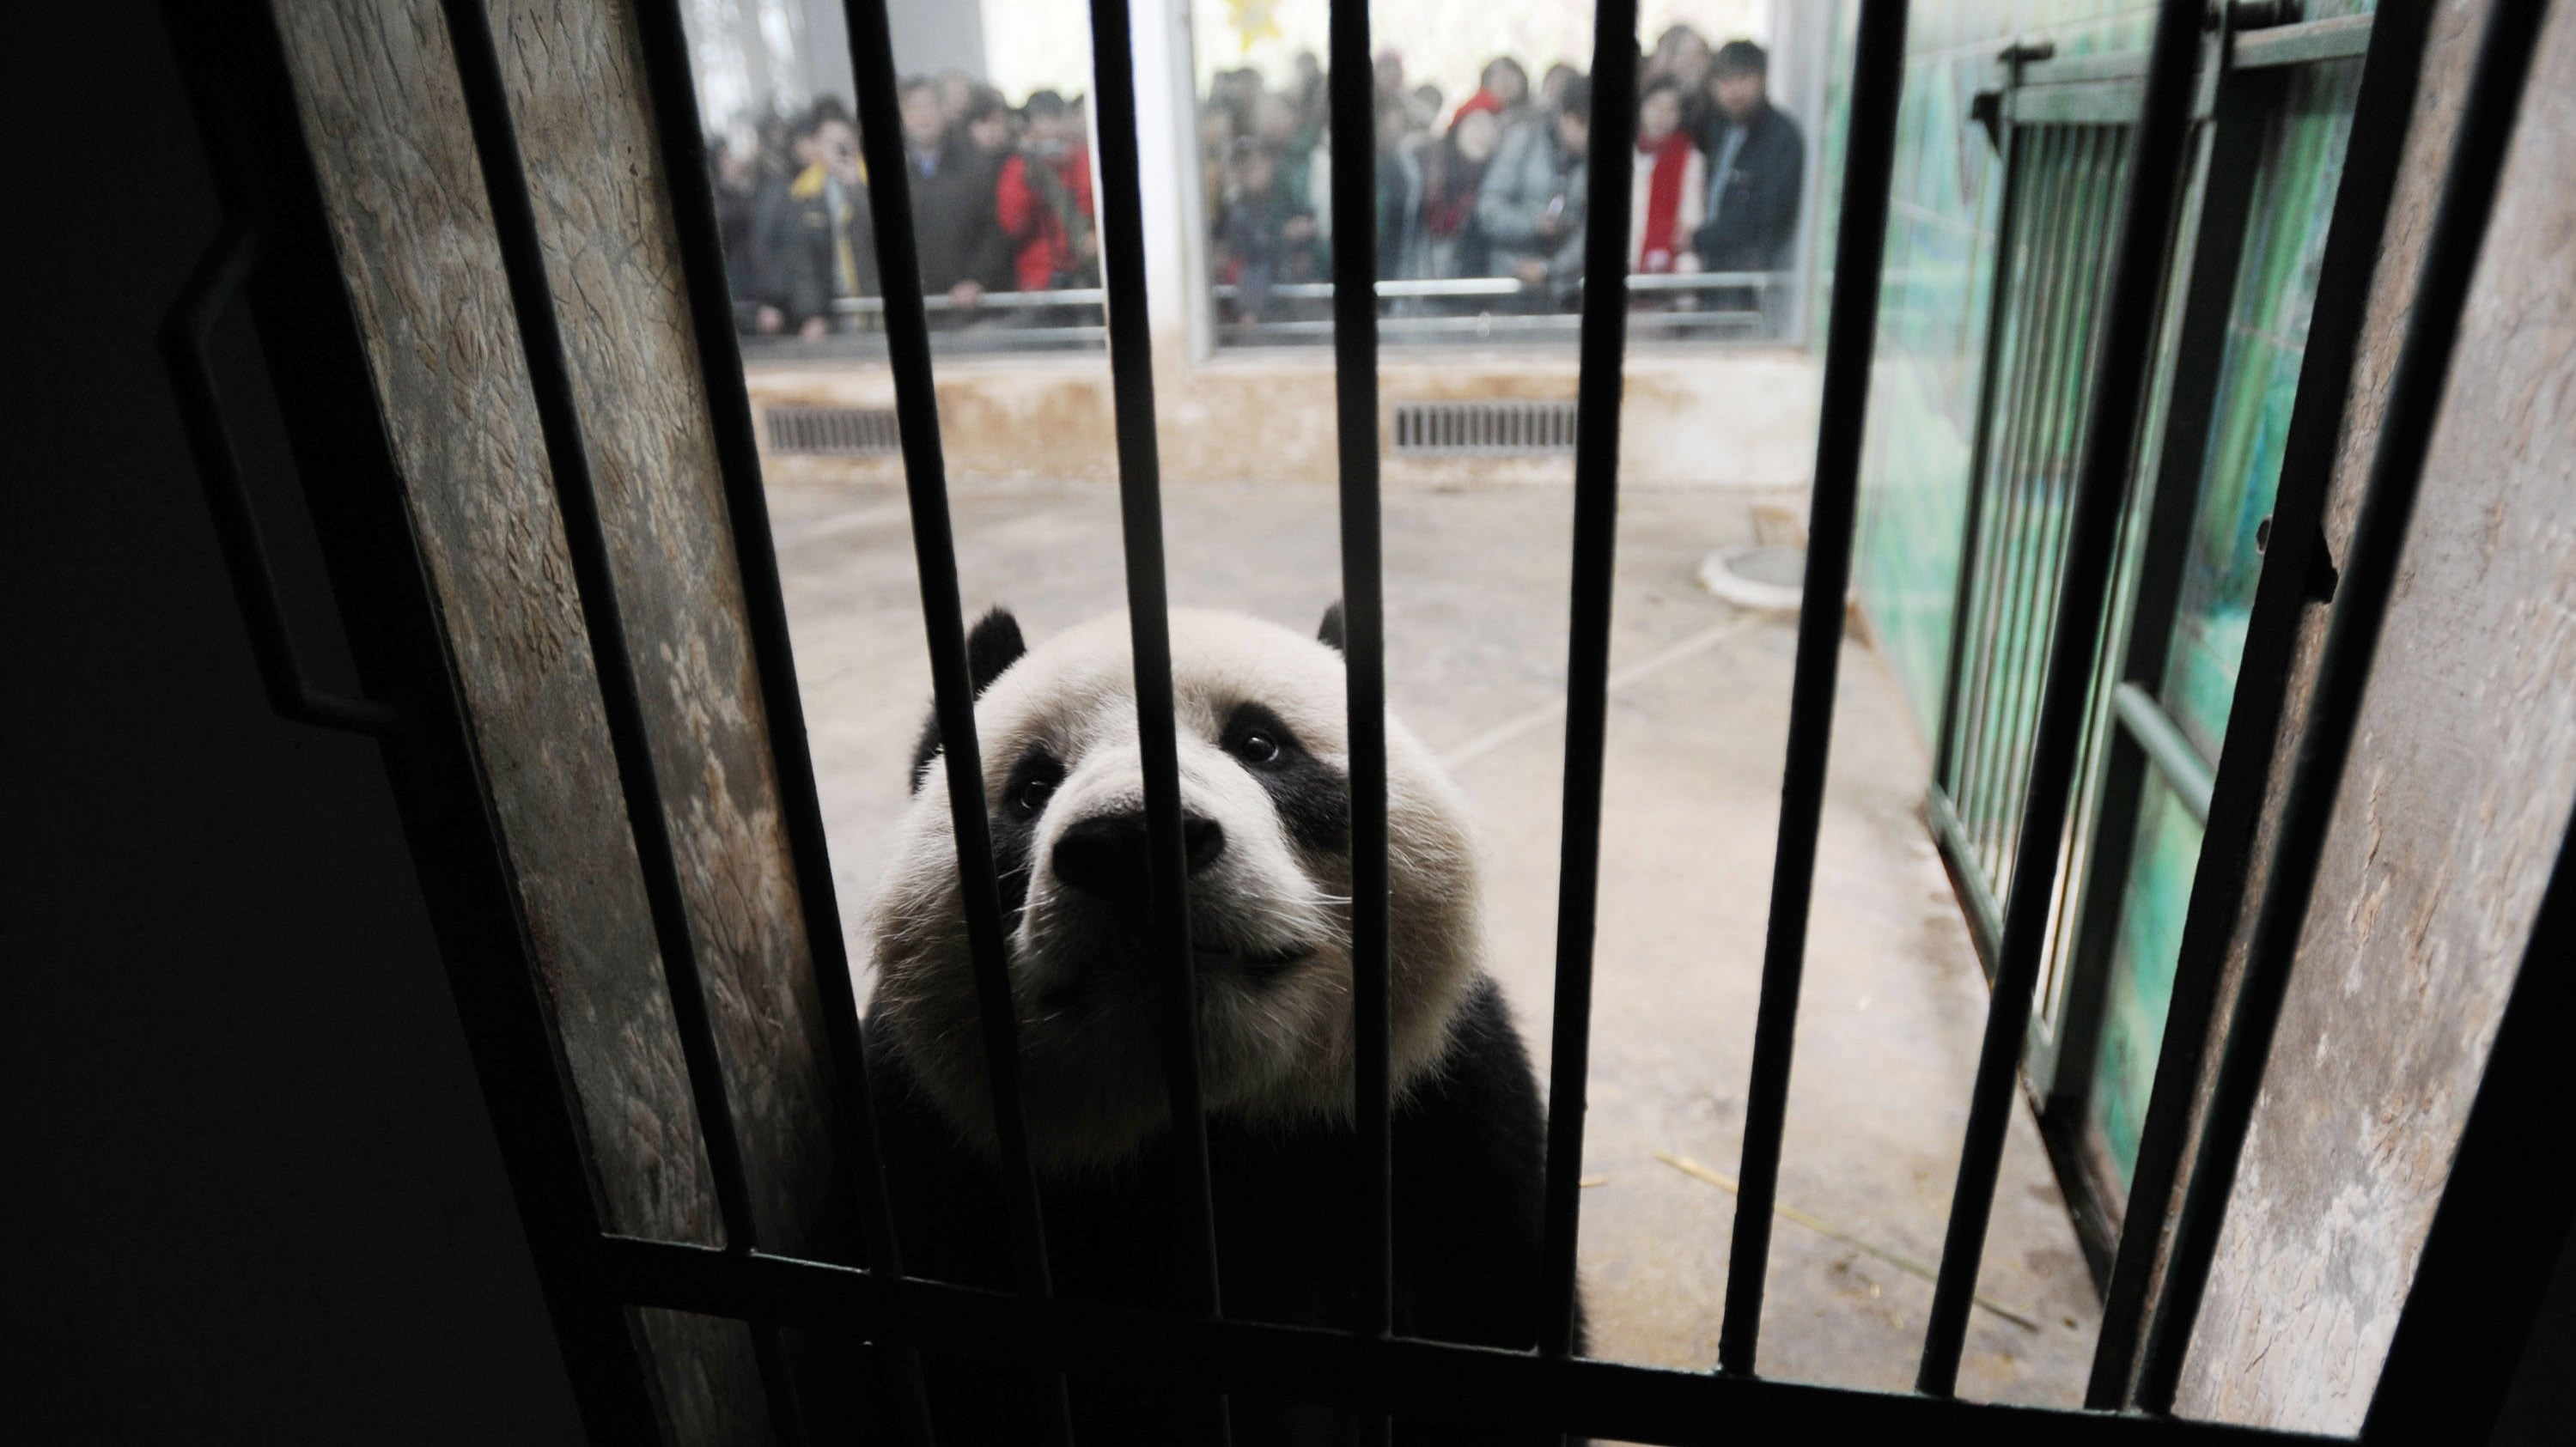 How To Find A More Ethical Zoo